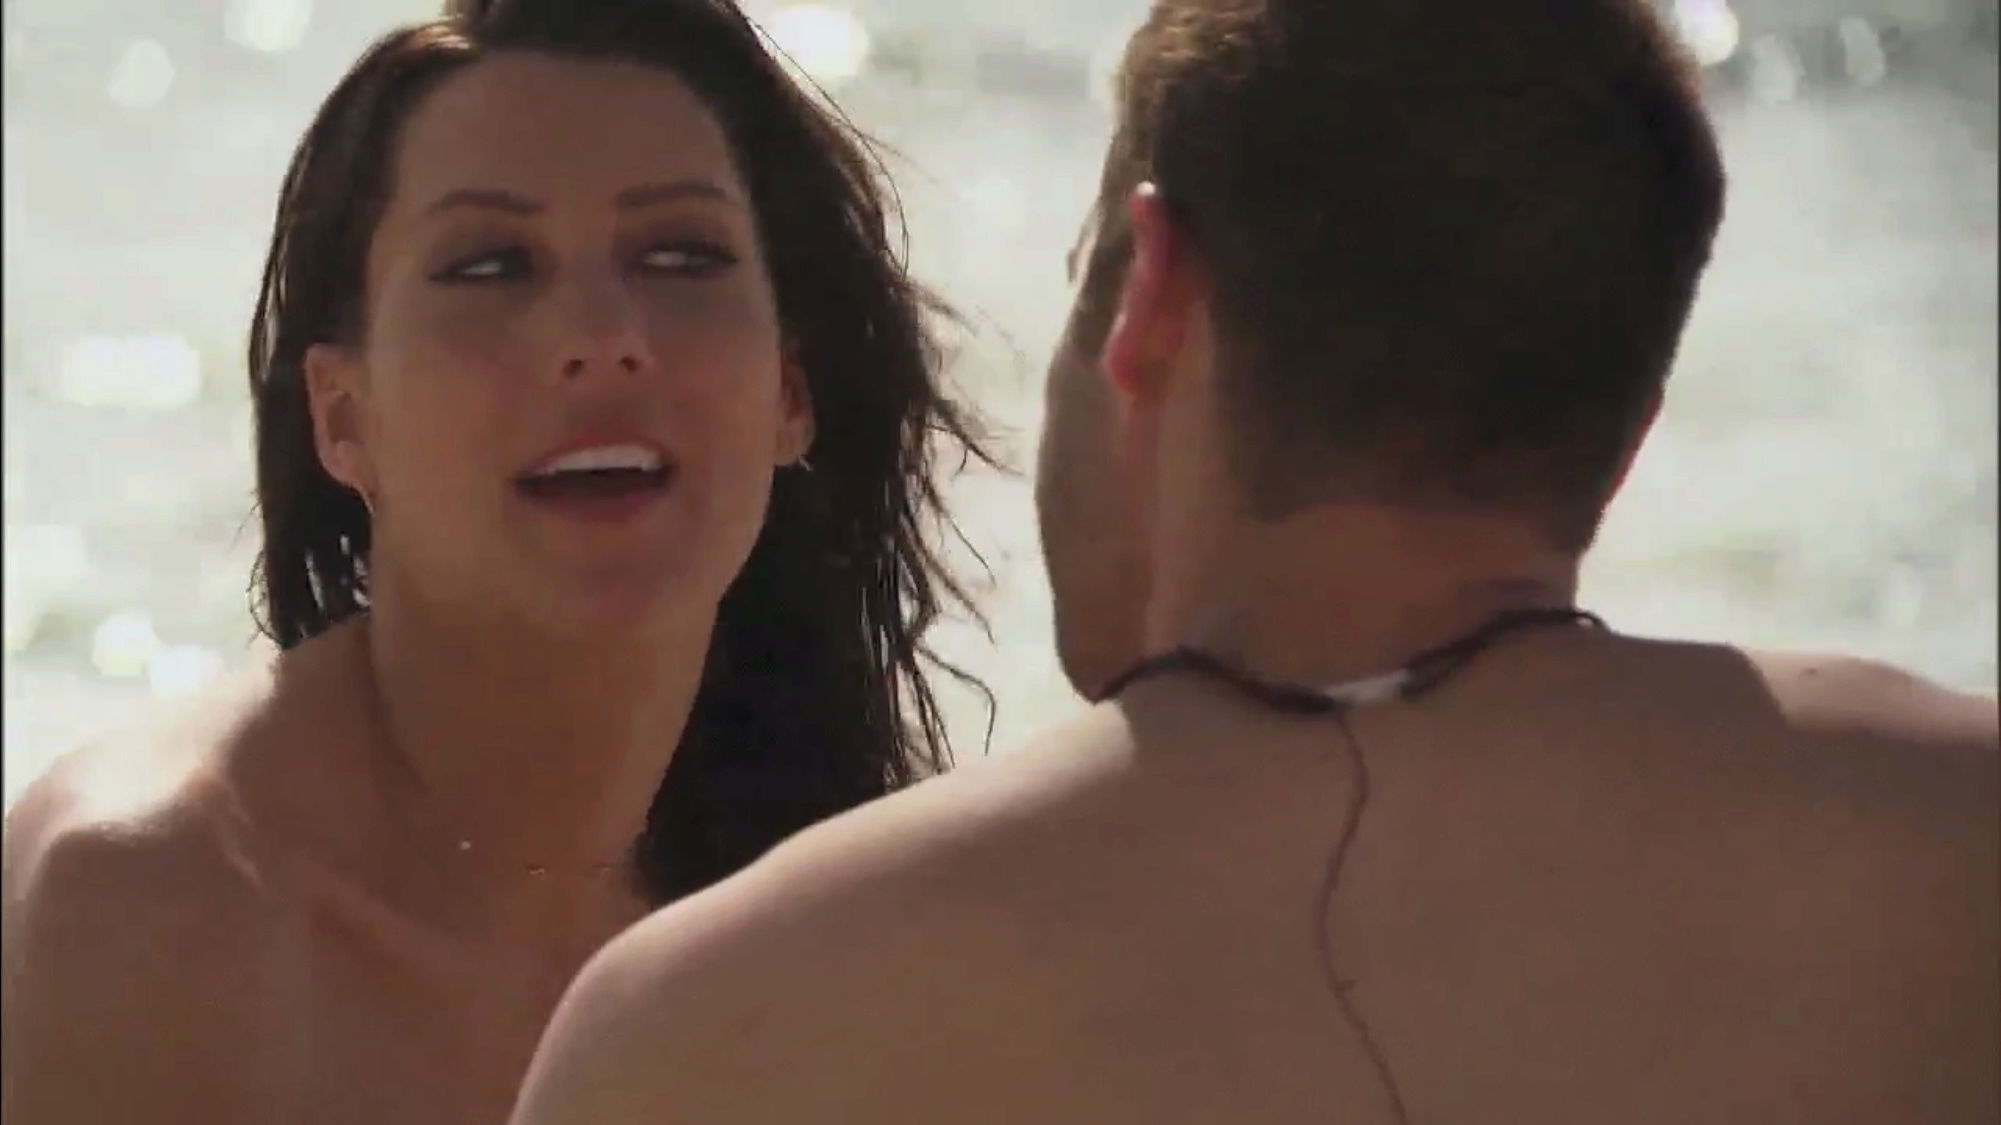 Bachelorette 14 - Becca Kufrin - ScreenCaps - NO Discussion - *Sleuthing Spoilers* 262d9d10